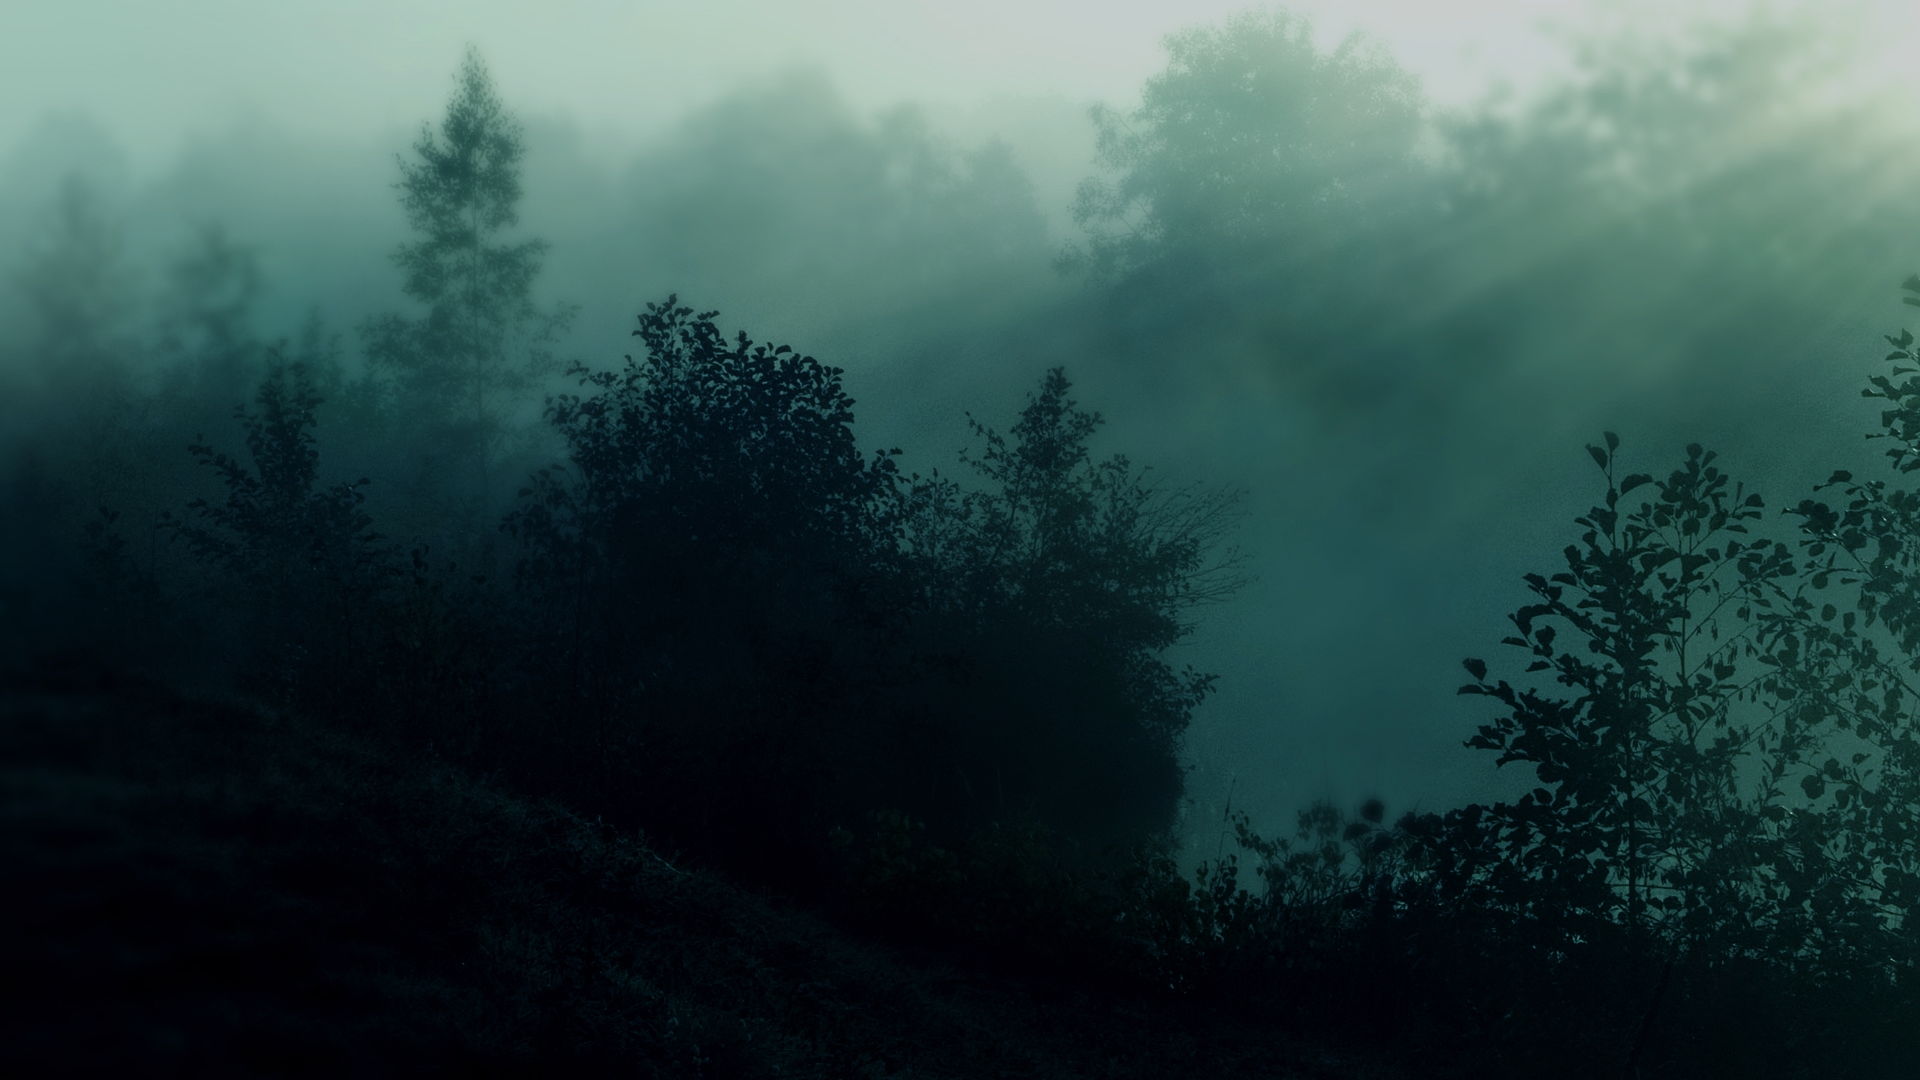 dark nature wallpapers photo with hd wallpaper resolution 1920x1080